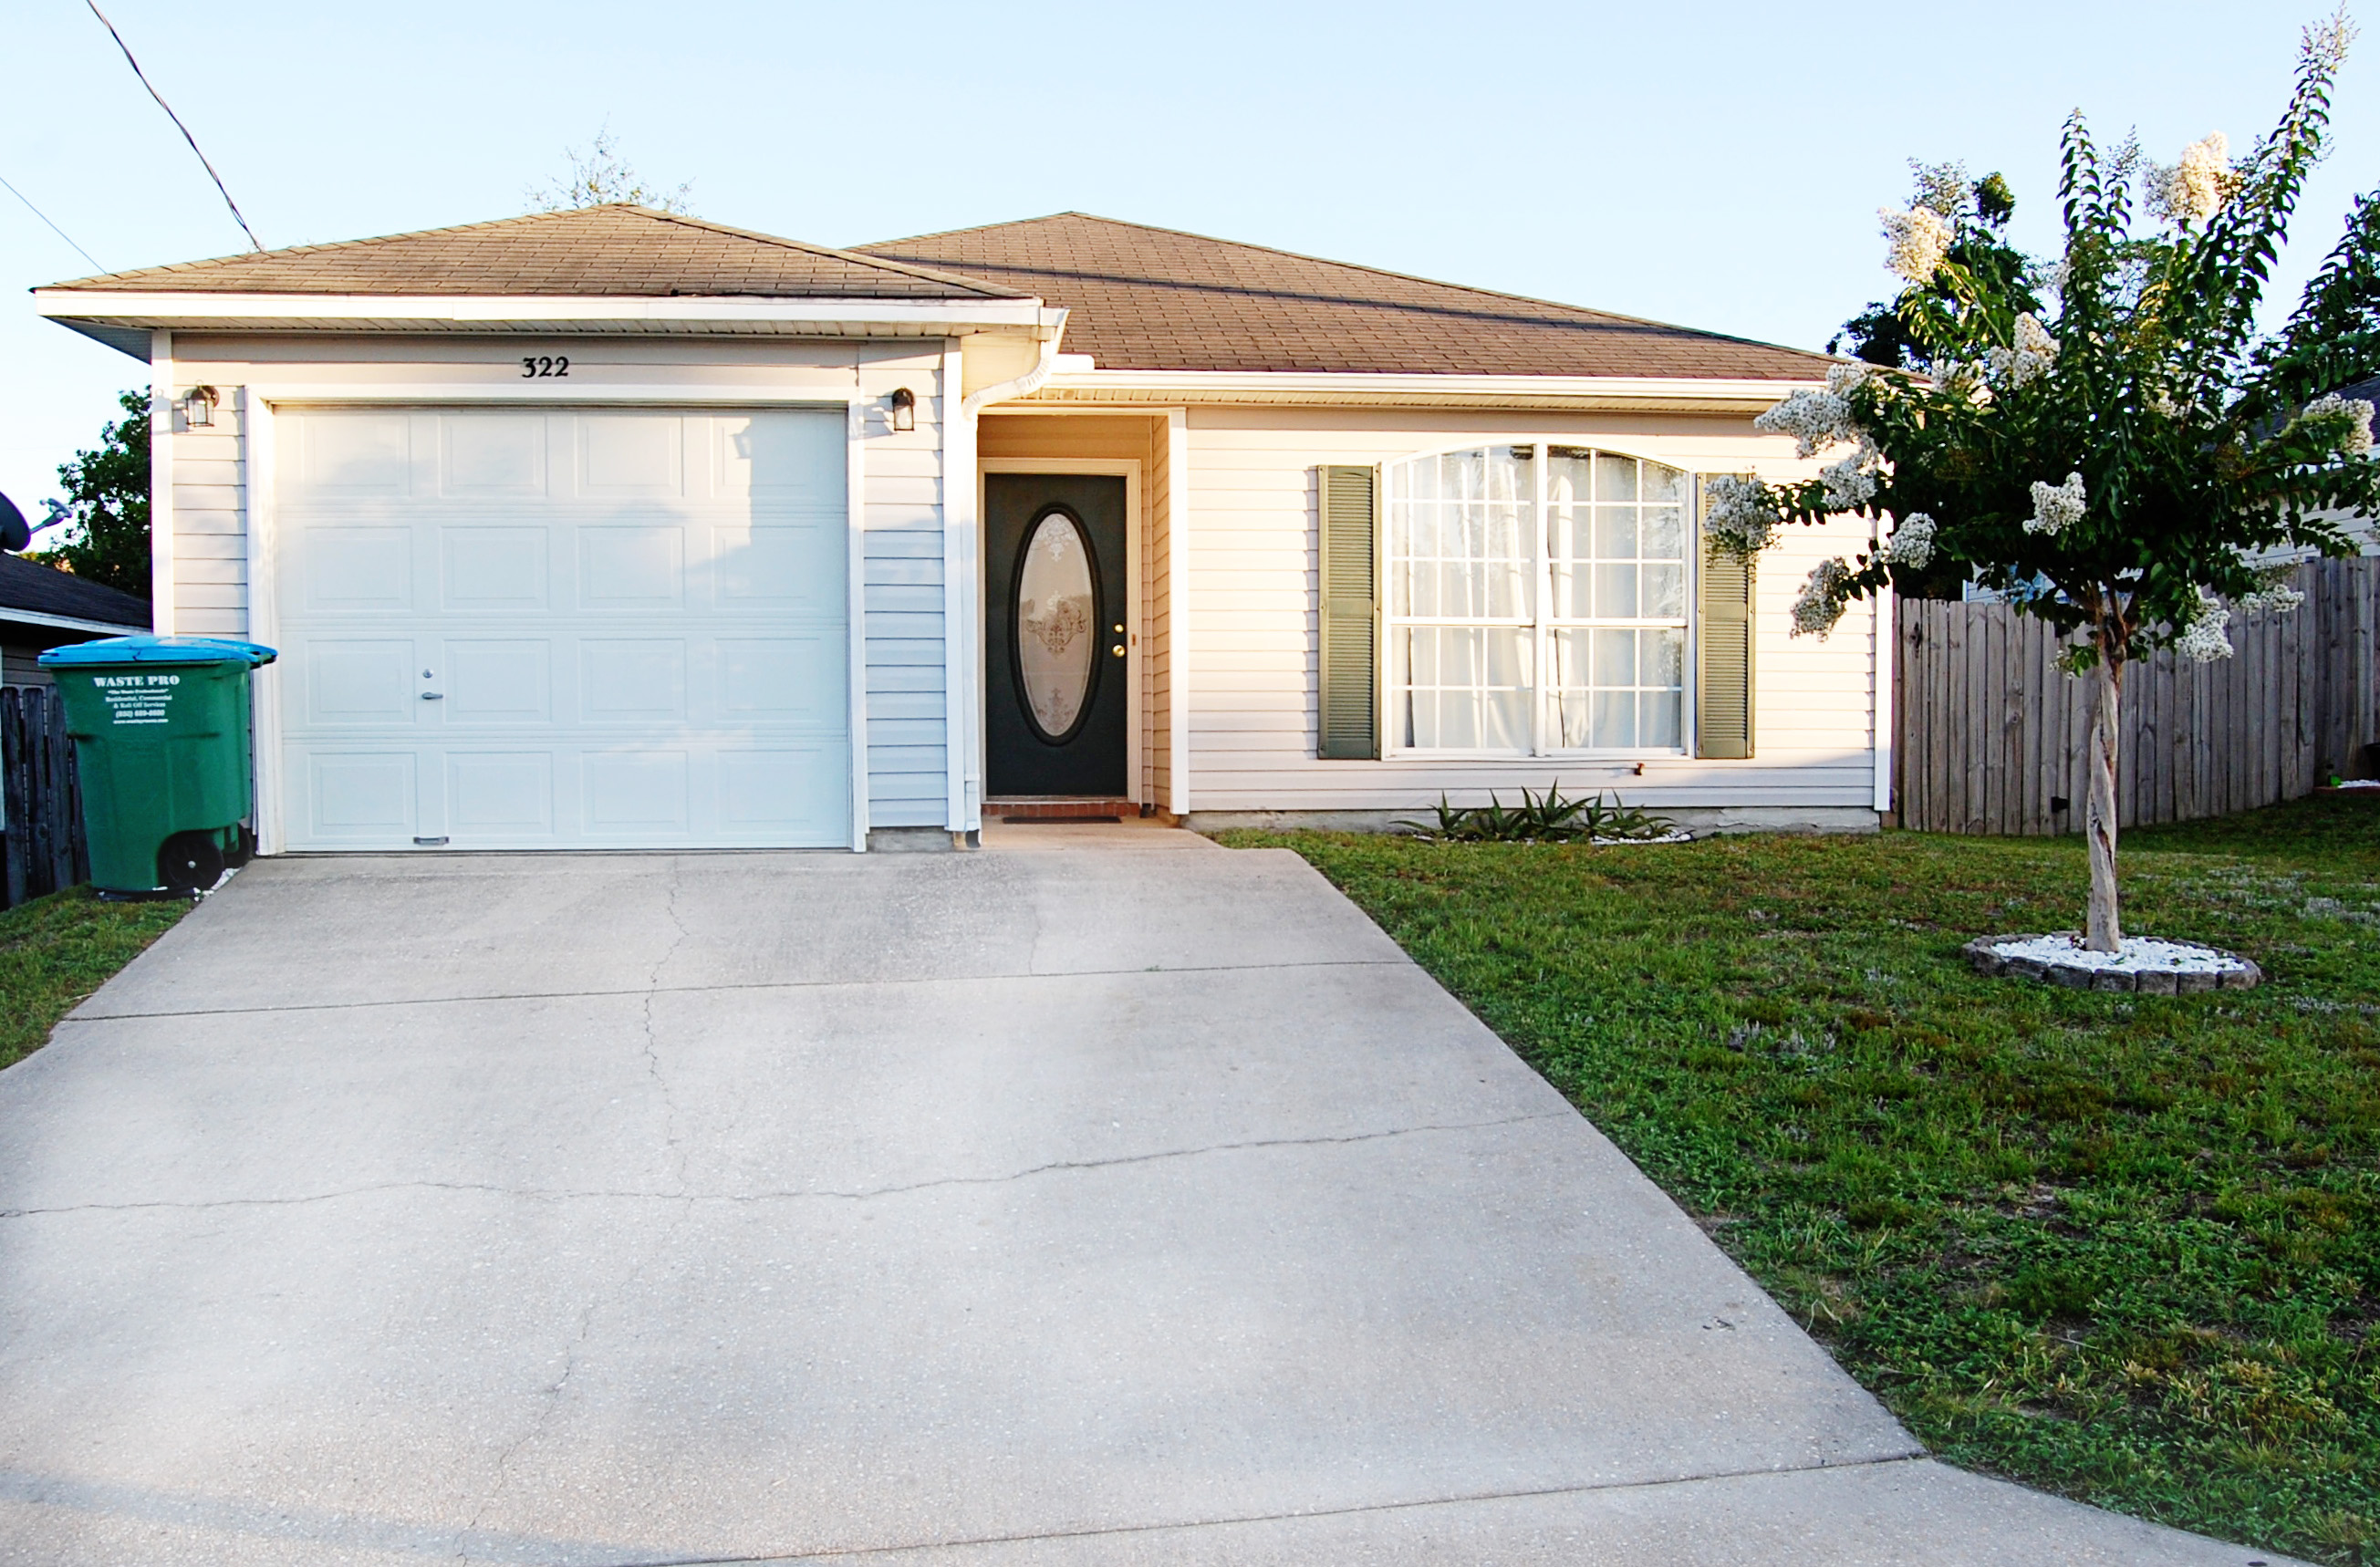 322-Apple-Drive-Crestview-FL-32536